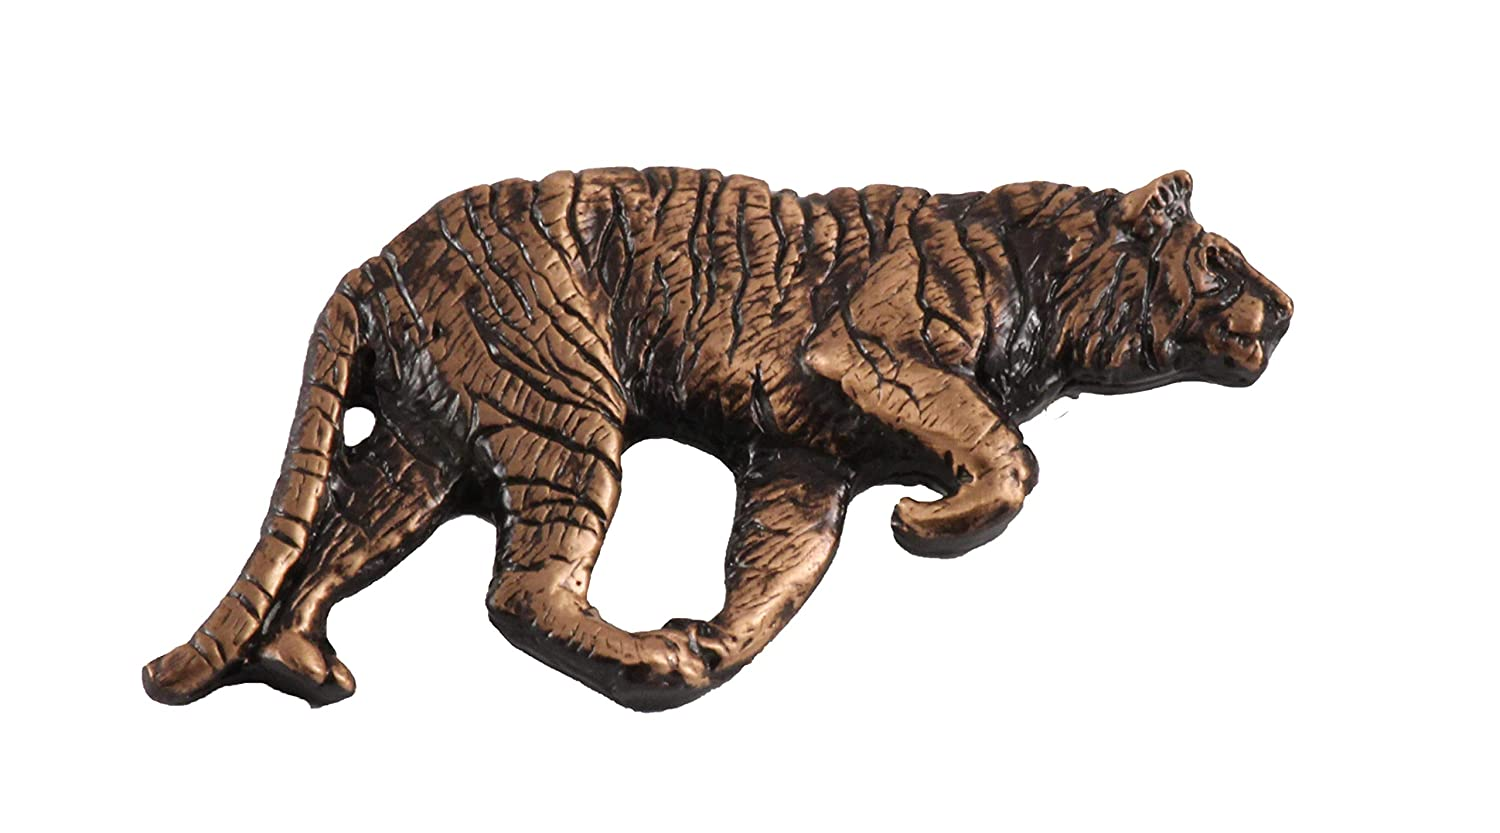 92d22fa75b3 Amazon.com: Creative Pewter Designs, Pewter Tiger Giant, Handcrafted Lapel  Pin Brooch, Antique Finish, M110: Creative Pewter Designs: Jewelry